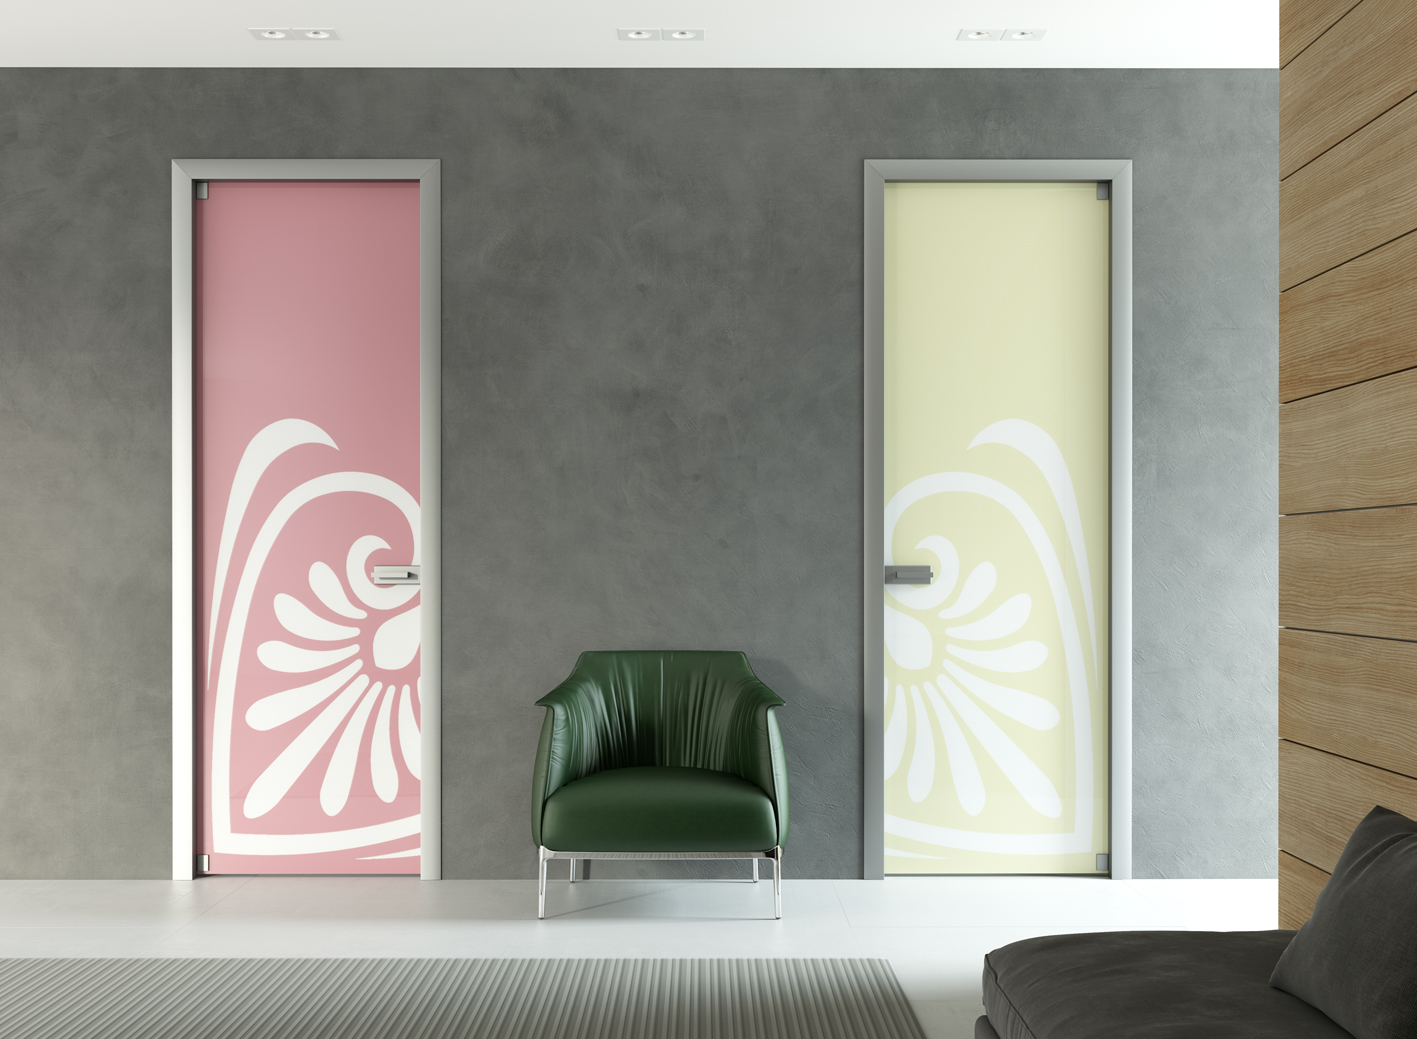 Porte Cristallo A Scomparsa.Porte In Vetro Porte Vetro Mr Art Design Tutto Vetro Glass Door